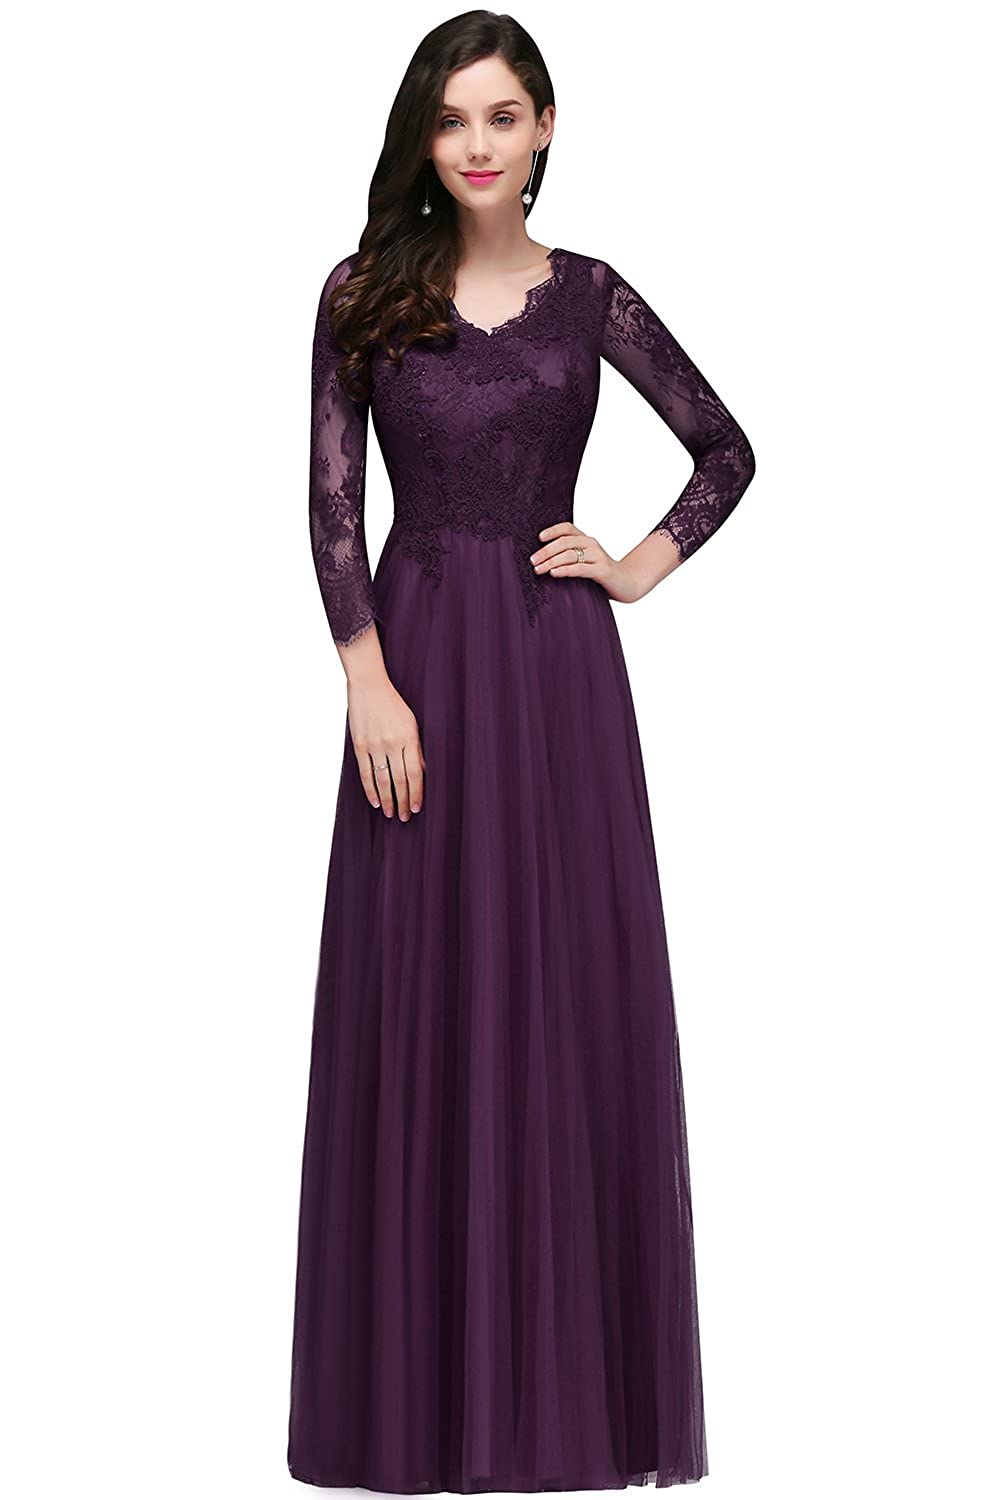 9ba9f6582cc MisShow Womens Lace Long Sleeve V Neck Formal Evening Party Long Maxi Dress